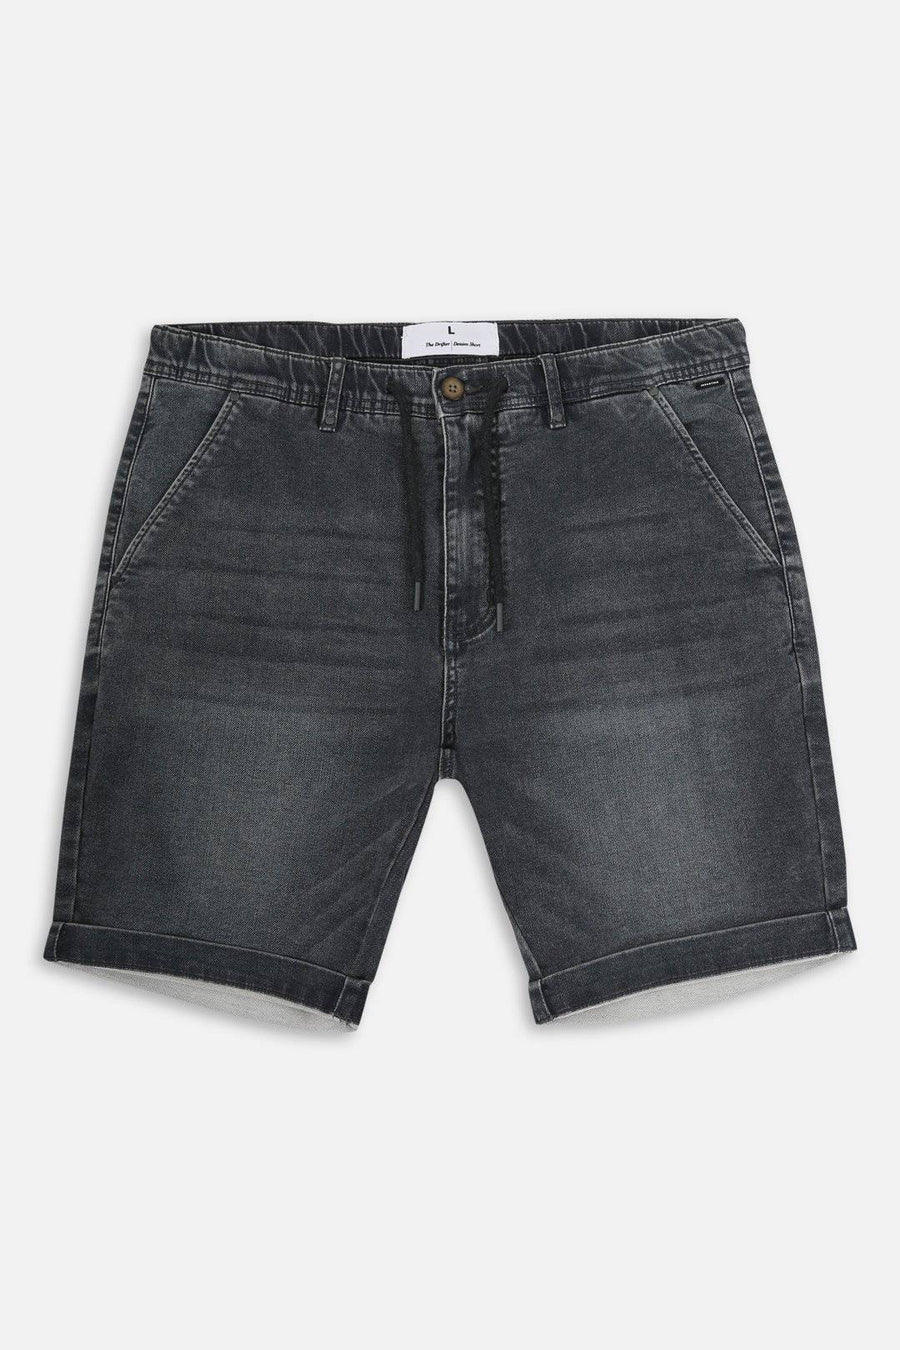 Asphalt Drifter Denim Shorts - South of London